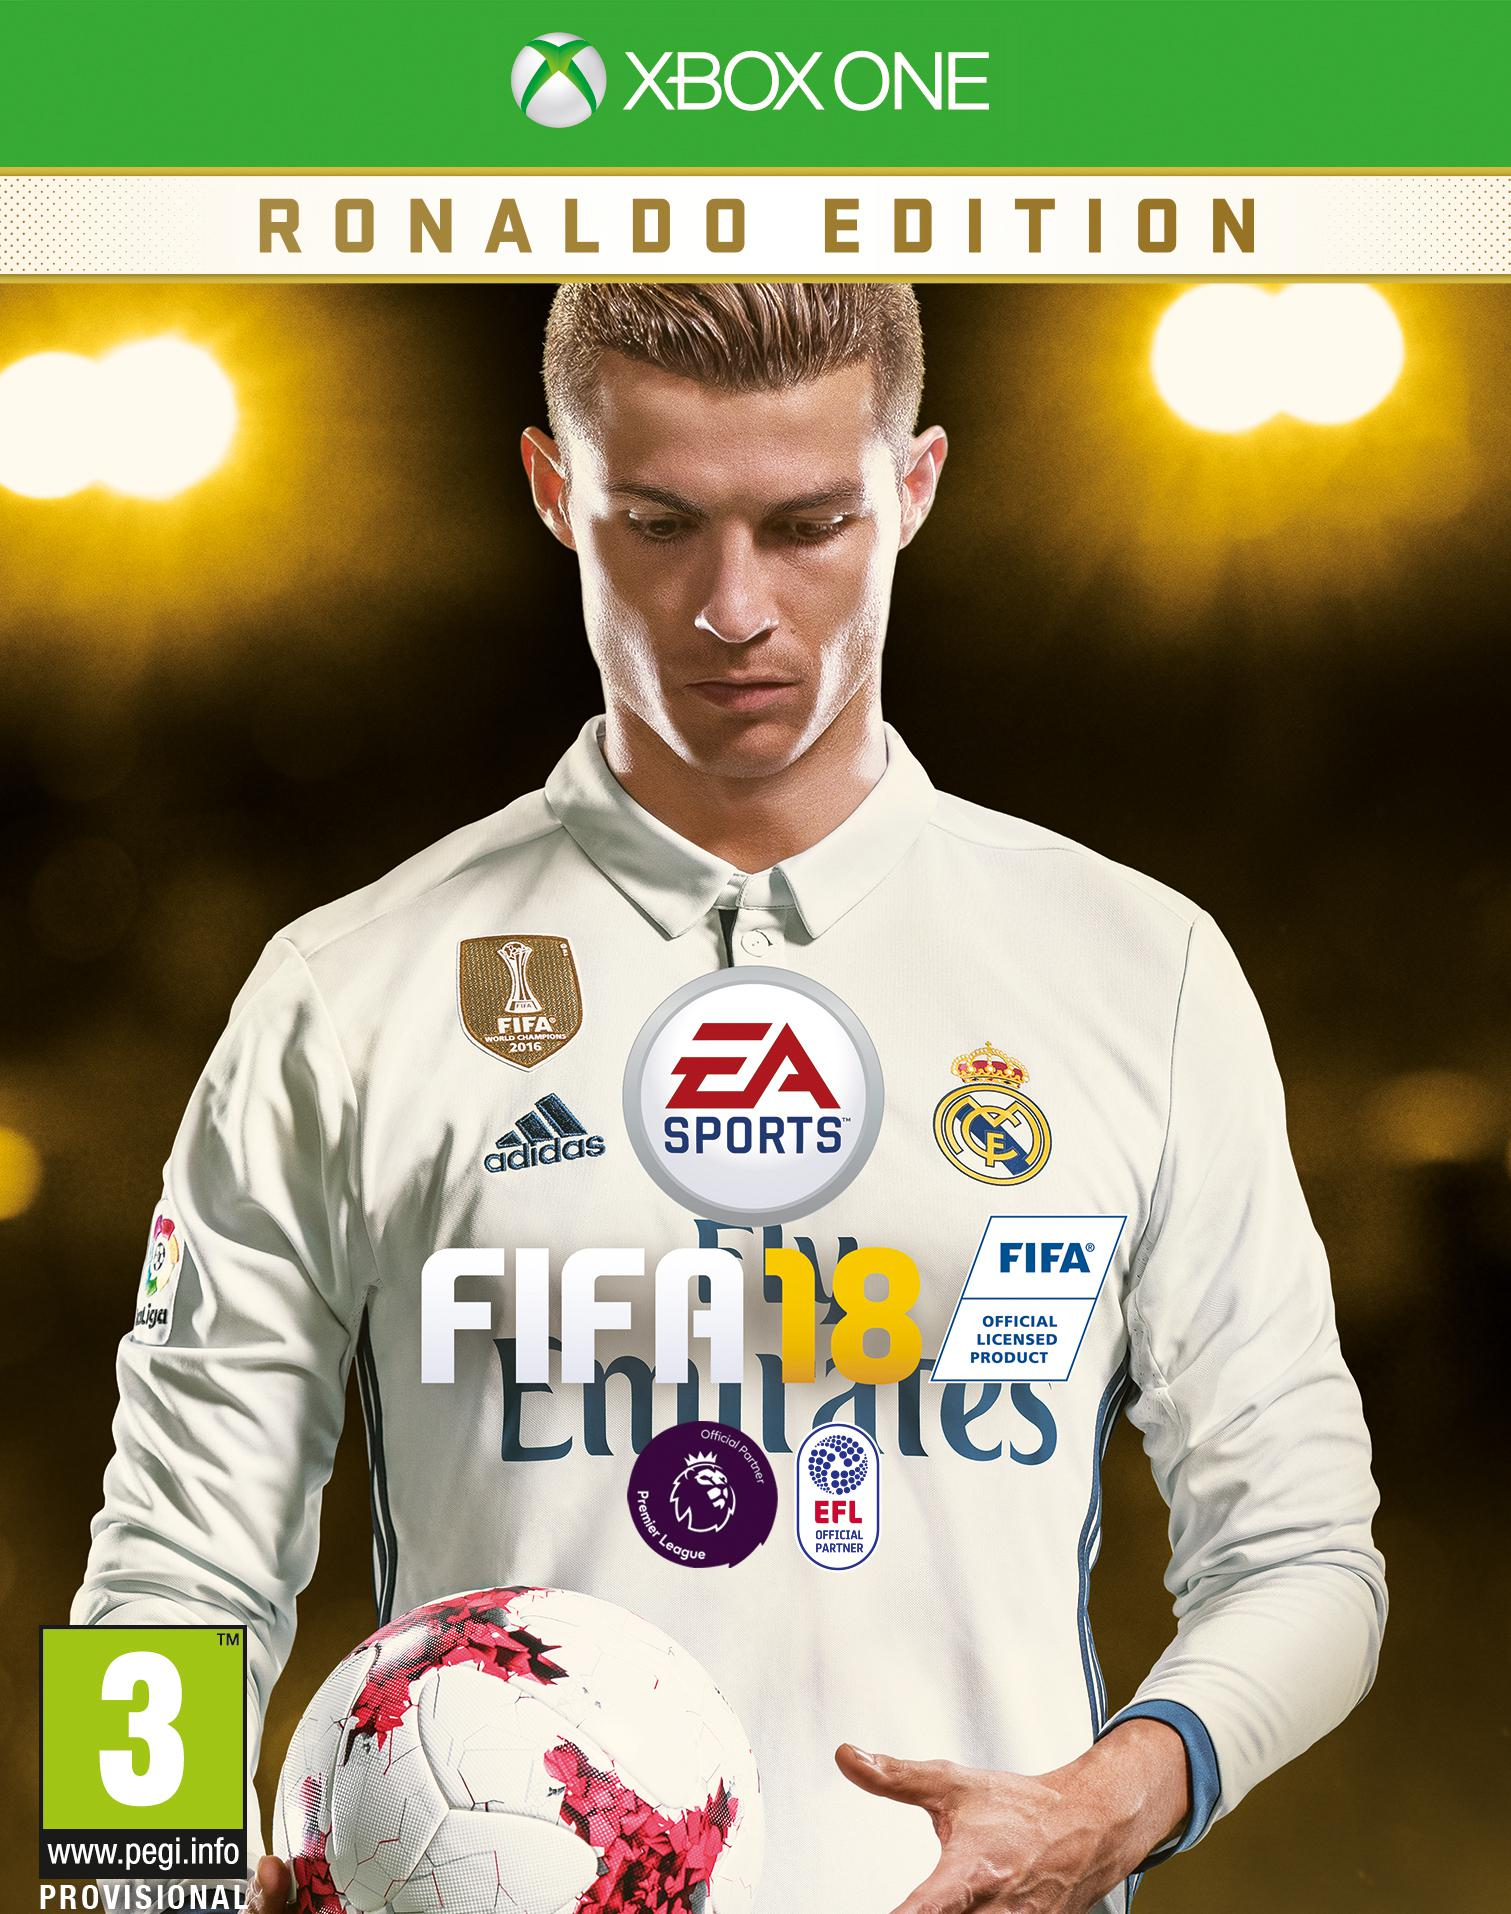 Cristiano Ronaldo is the new face of this year's FIFA 18